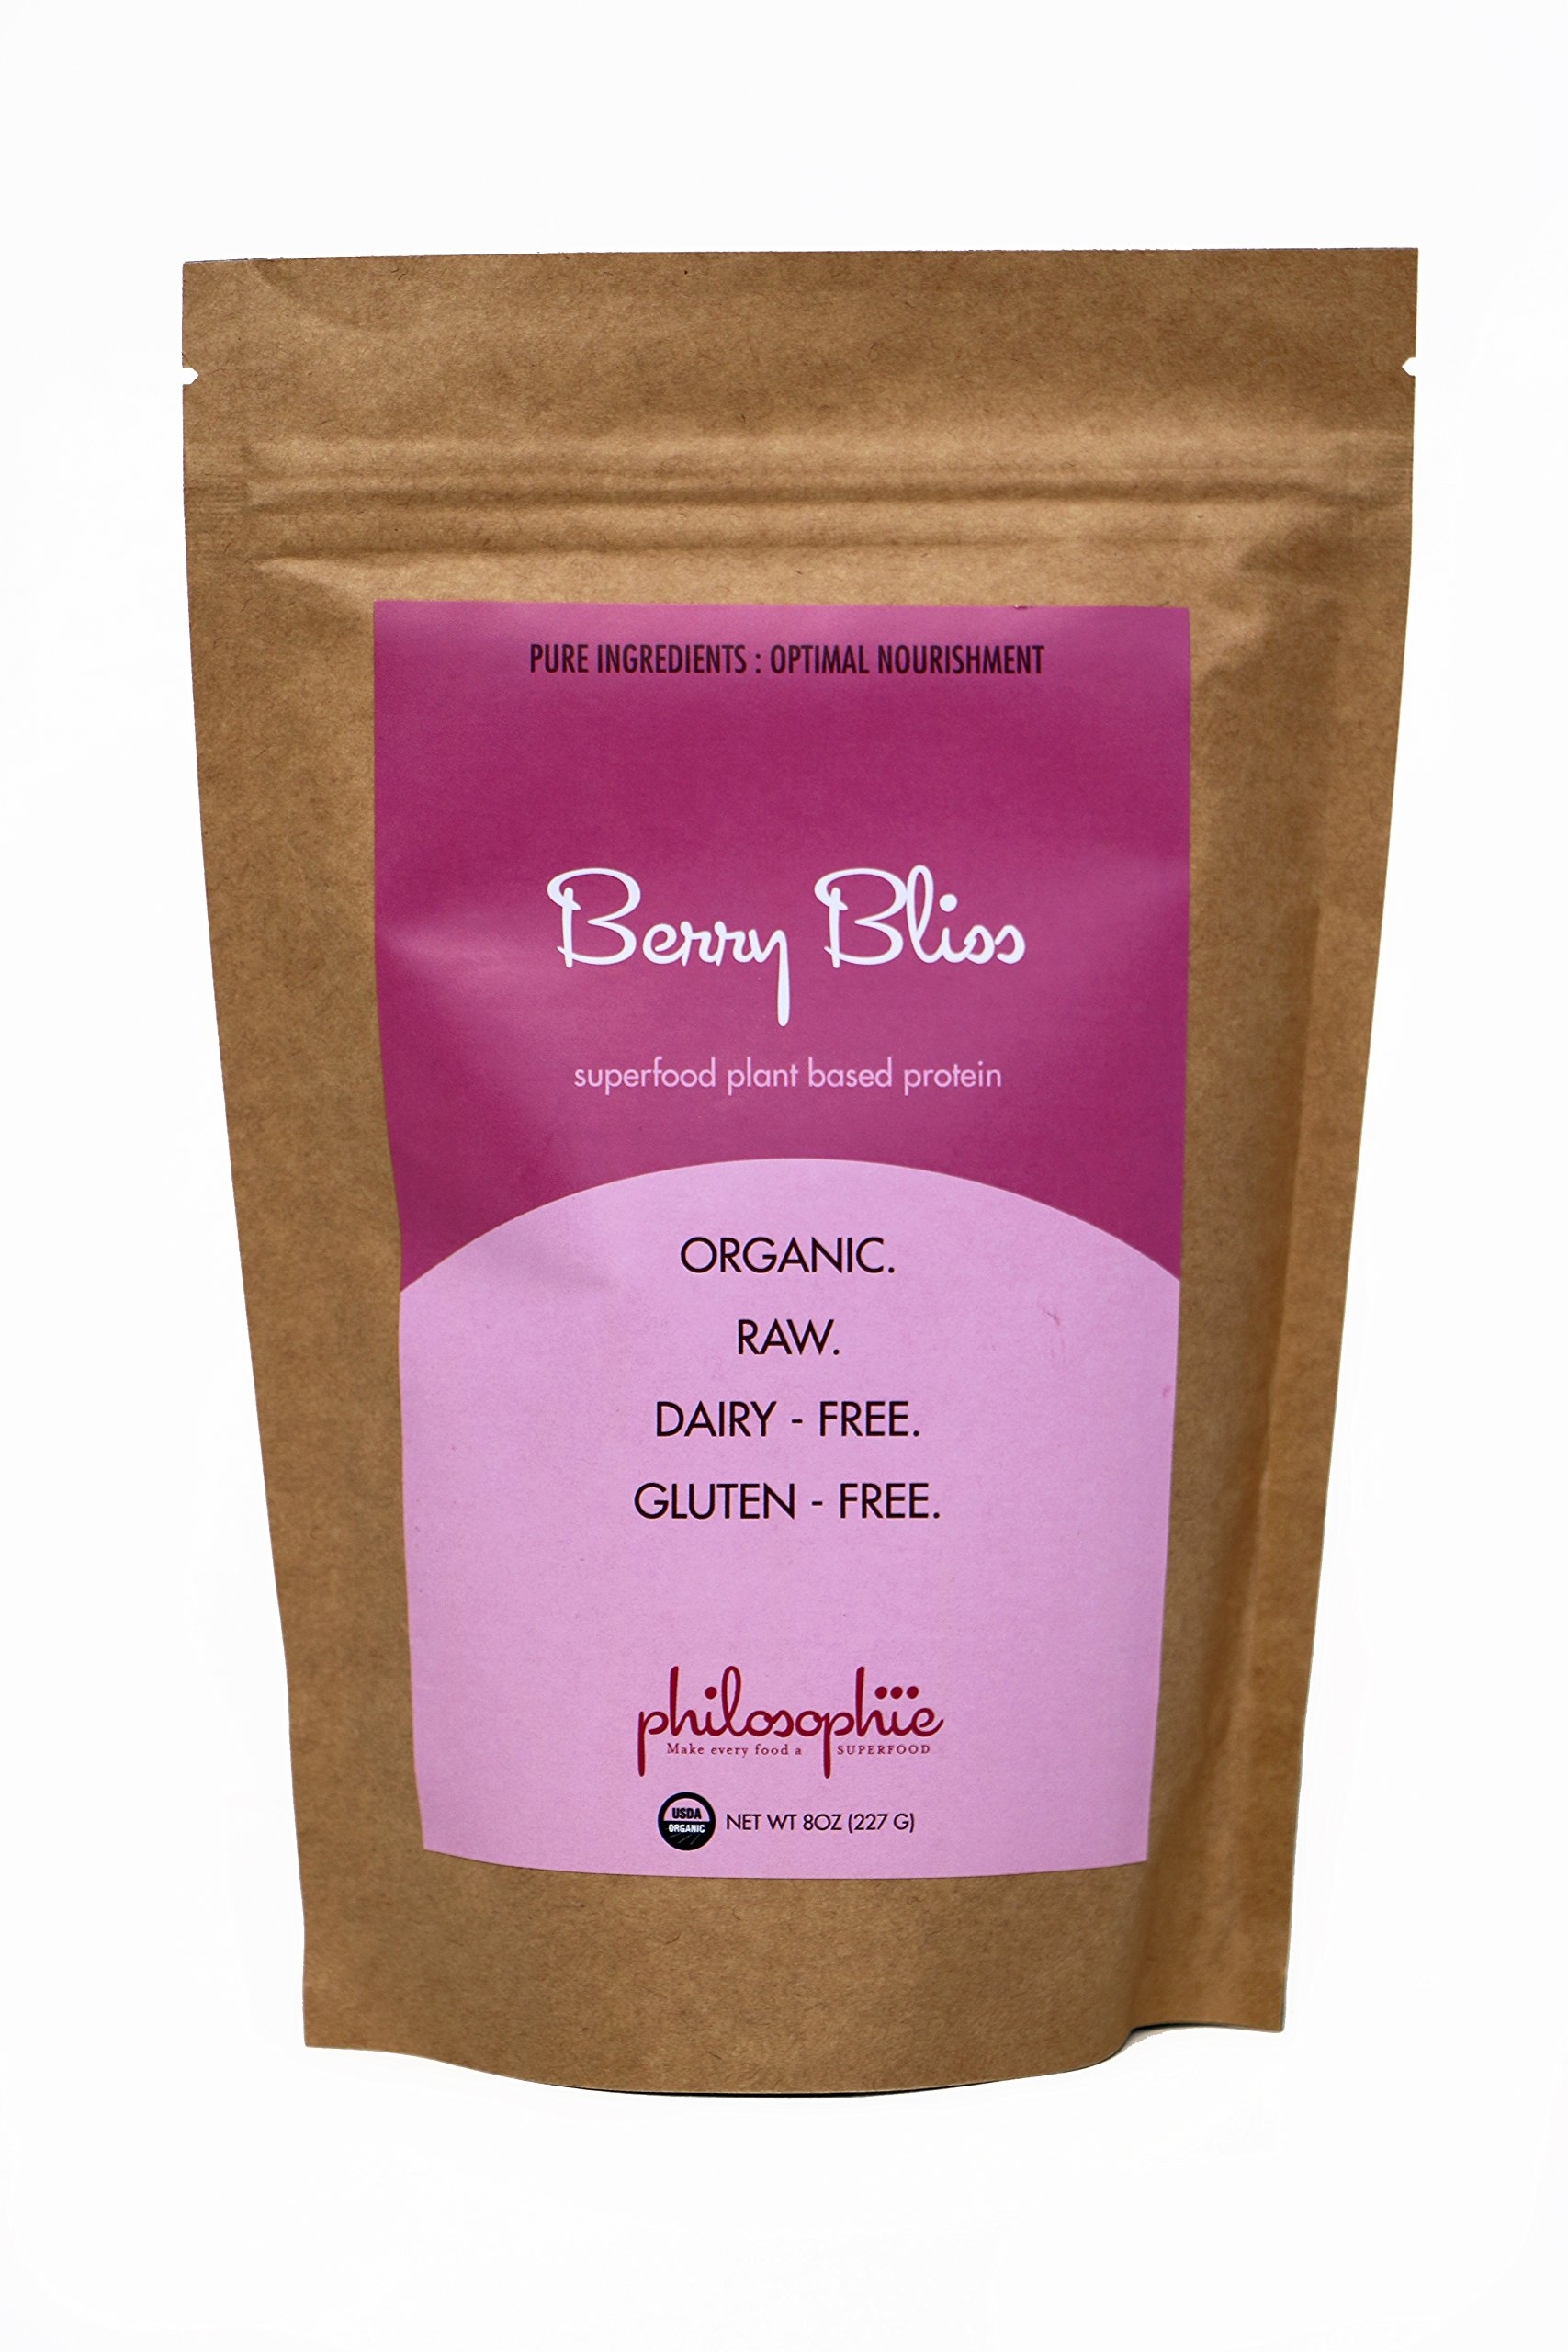 Berry Bliss Superfood Protein Powder 8oz - Low carb superfoods supplement for detox, health and immunity!